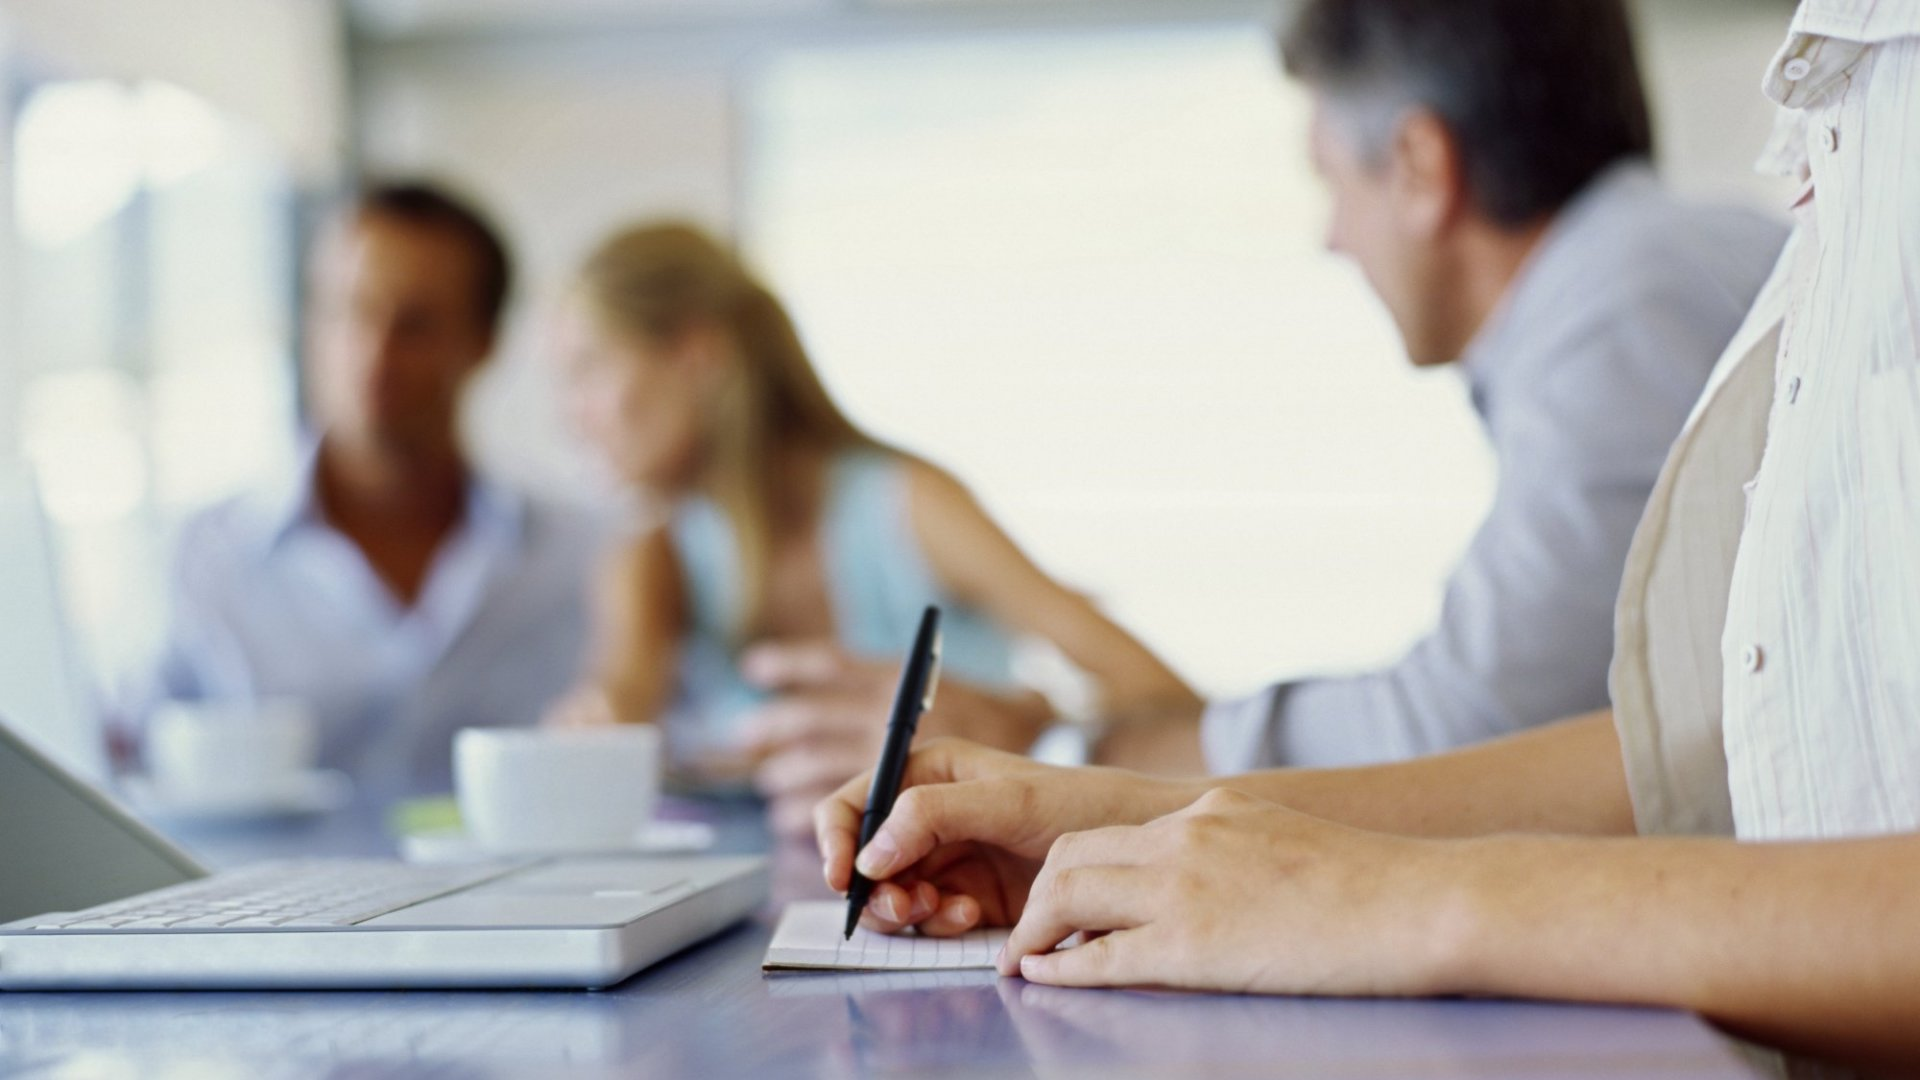 3 Ways to Take Notes in a Meeting More Efficiently